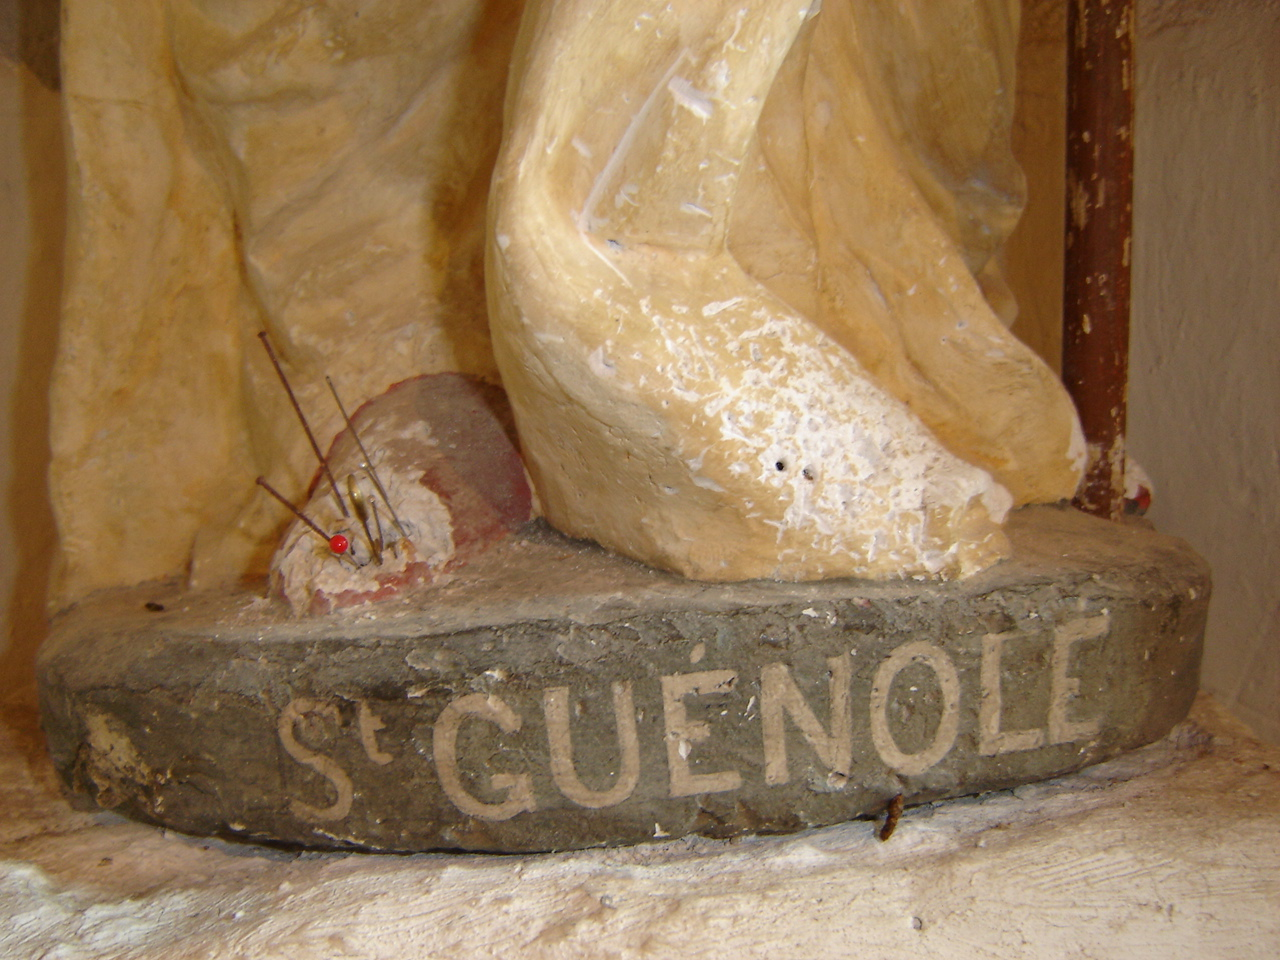 Statue of Saint Guignole pierced with needles